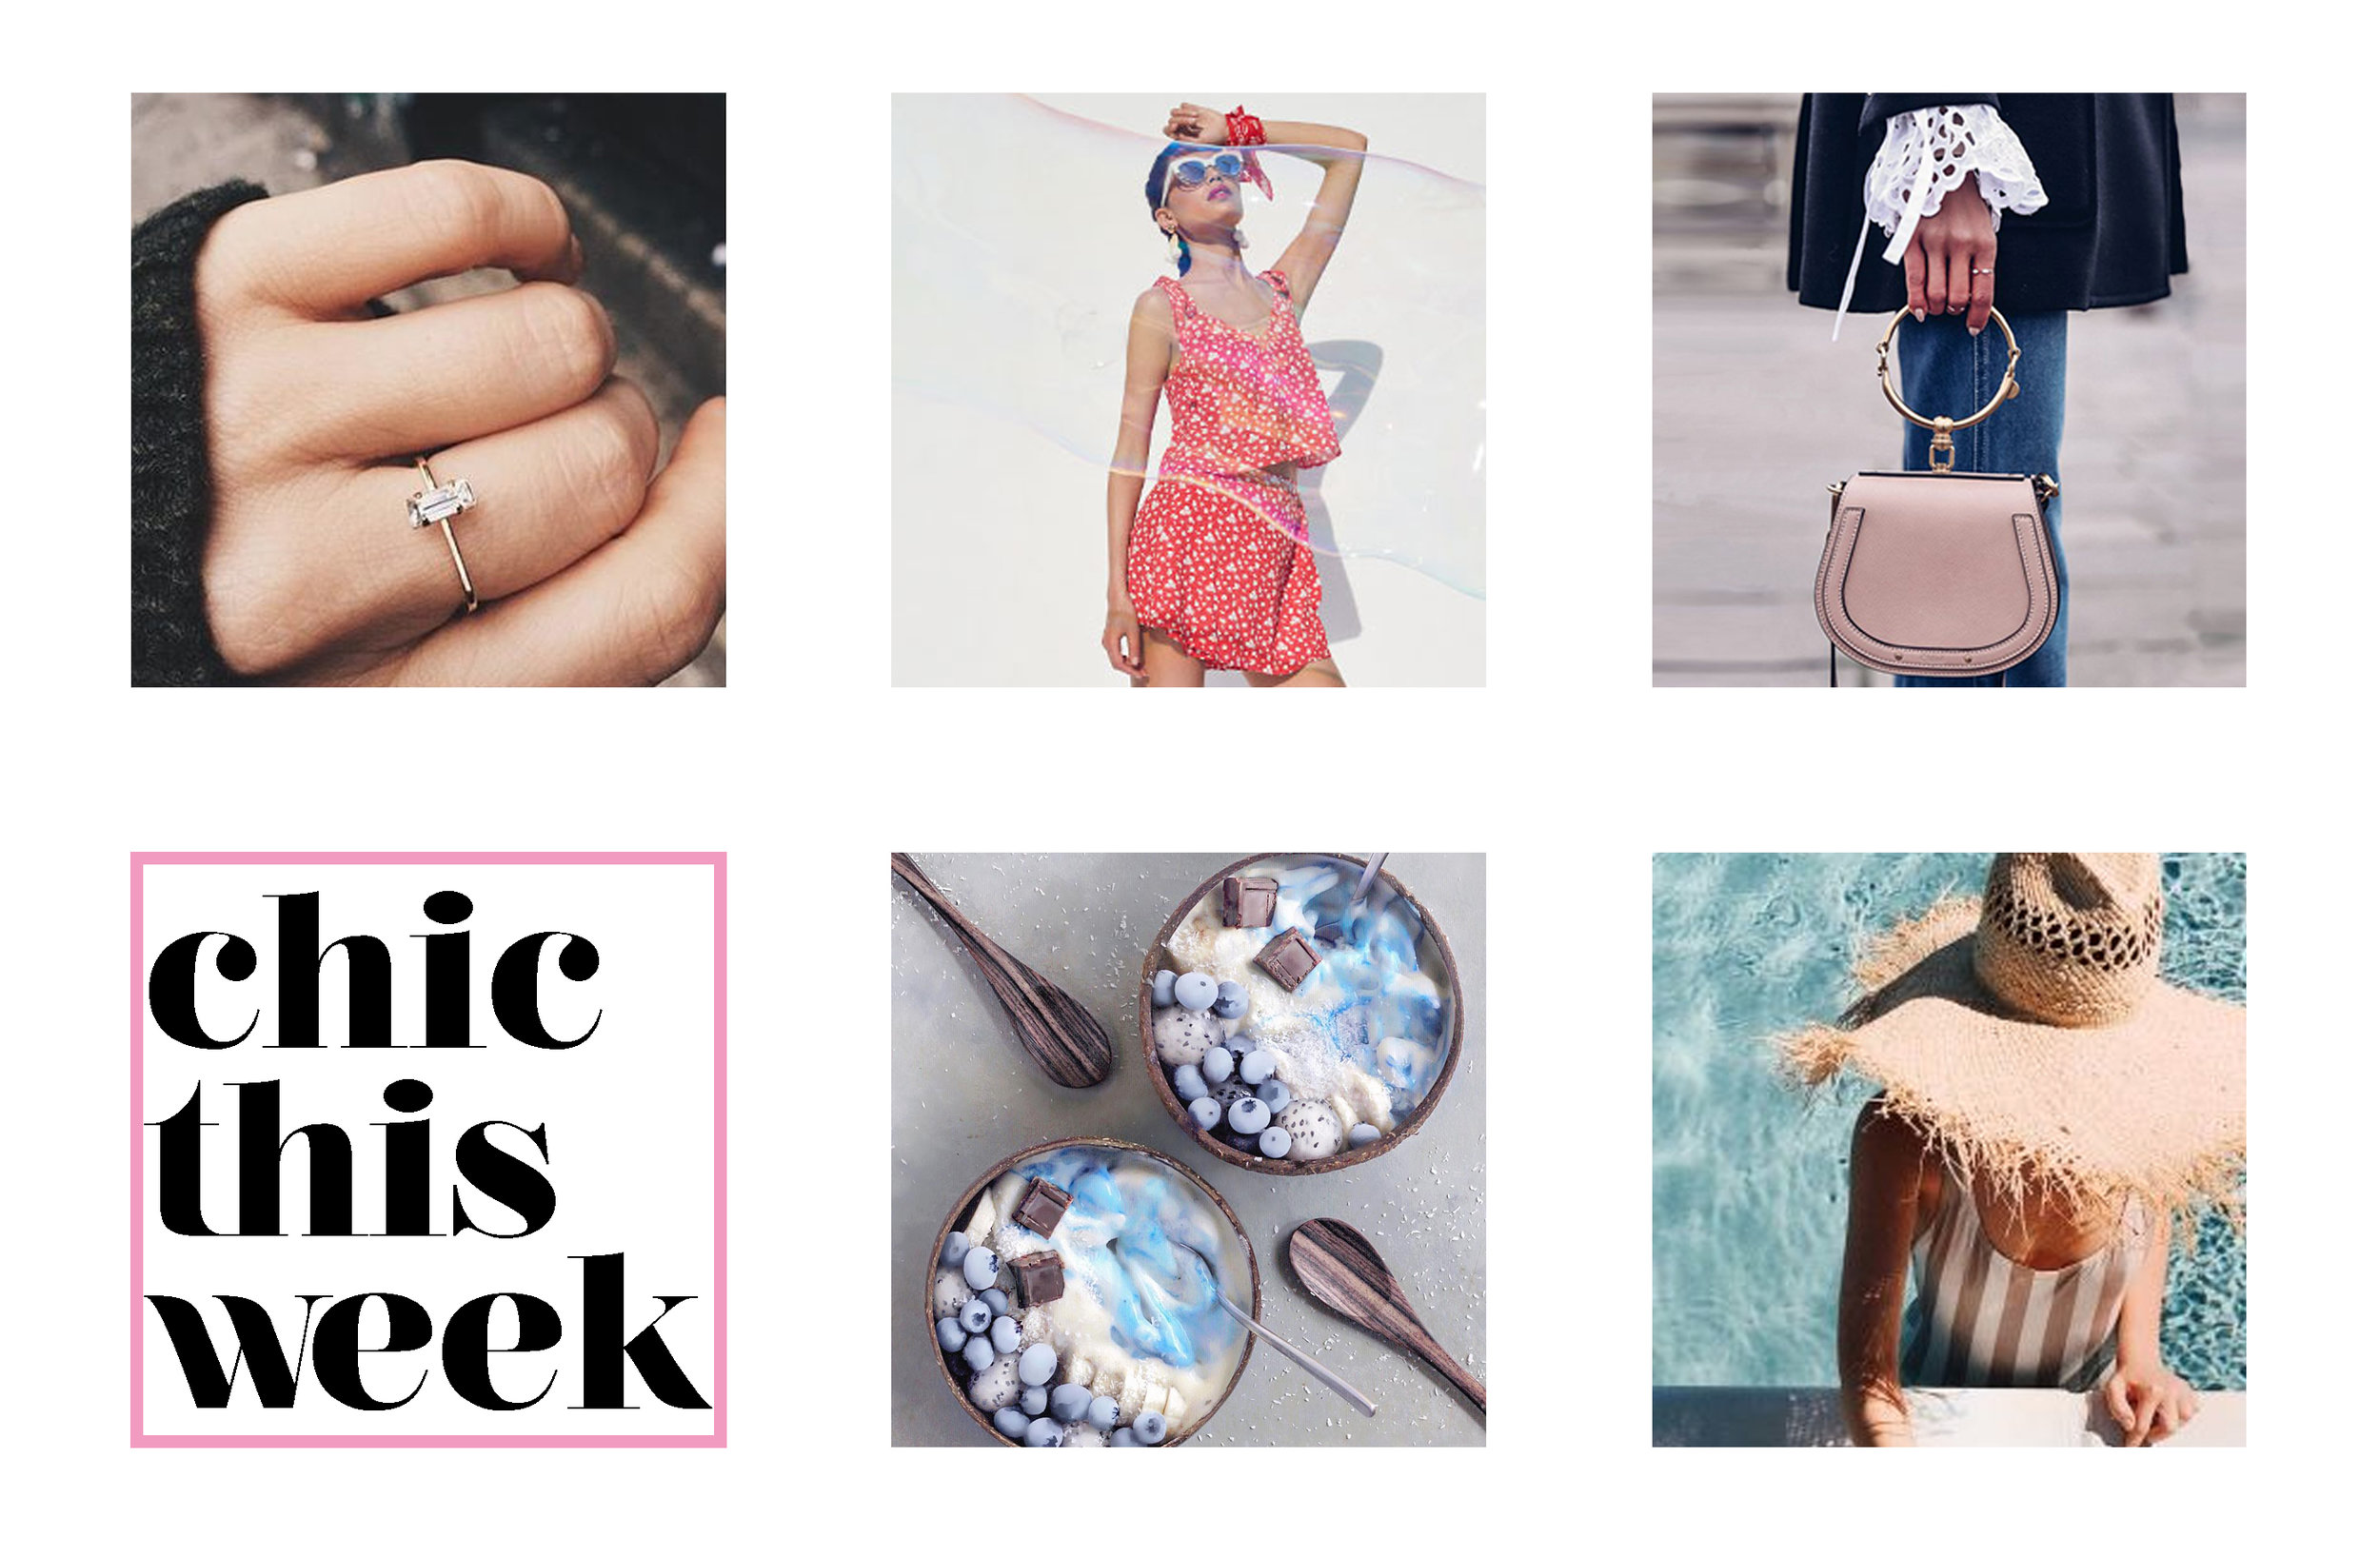 What's chic this week (Volume 040)